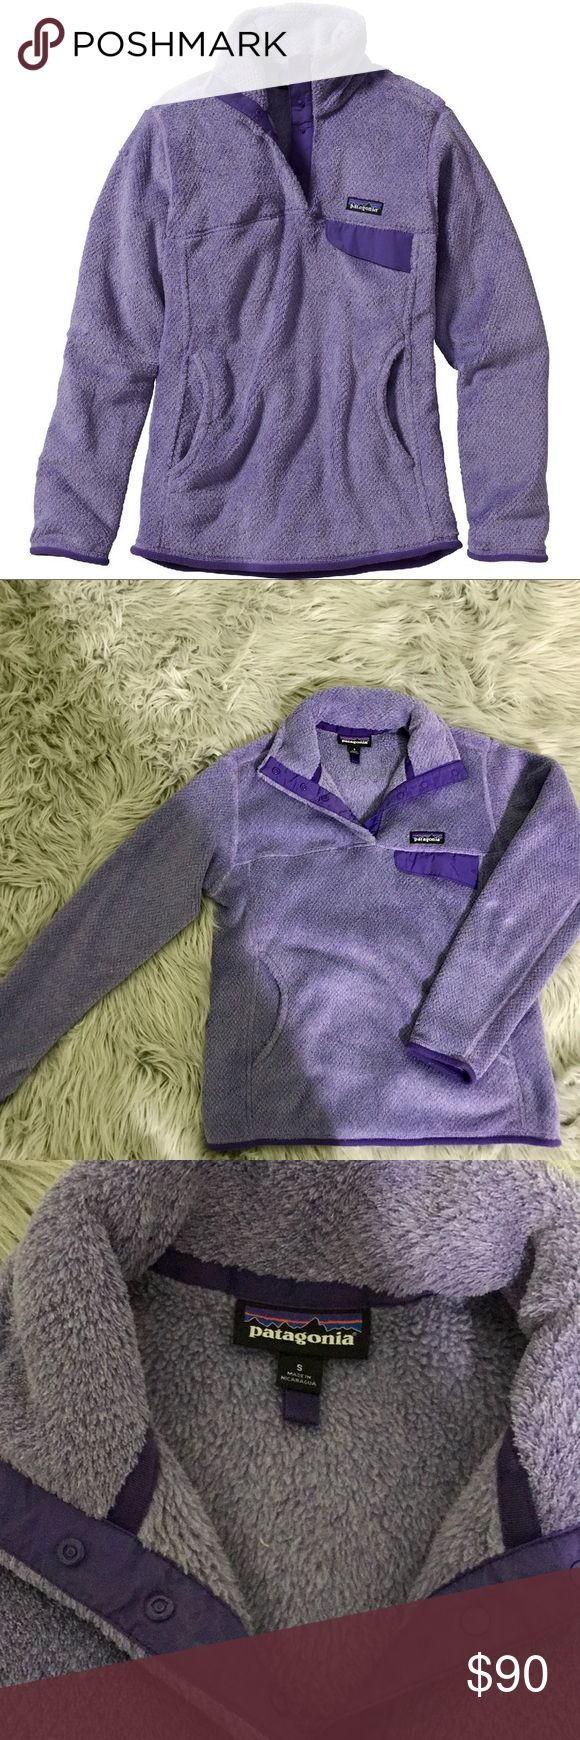 Purple Patagonia Fleece Pullover Tundra Purple Patagonia fleece pullover. Only worn a couple of times, in great condition! Patagonia Jackets & Coats